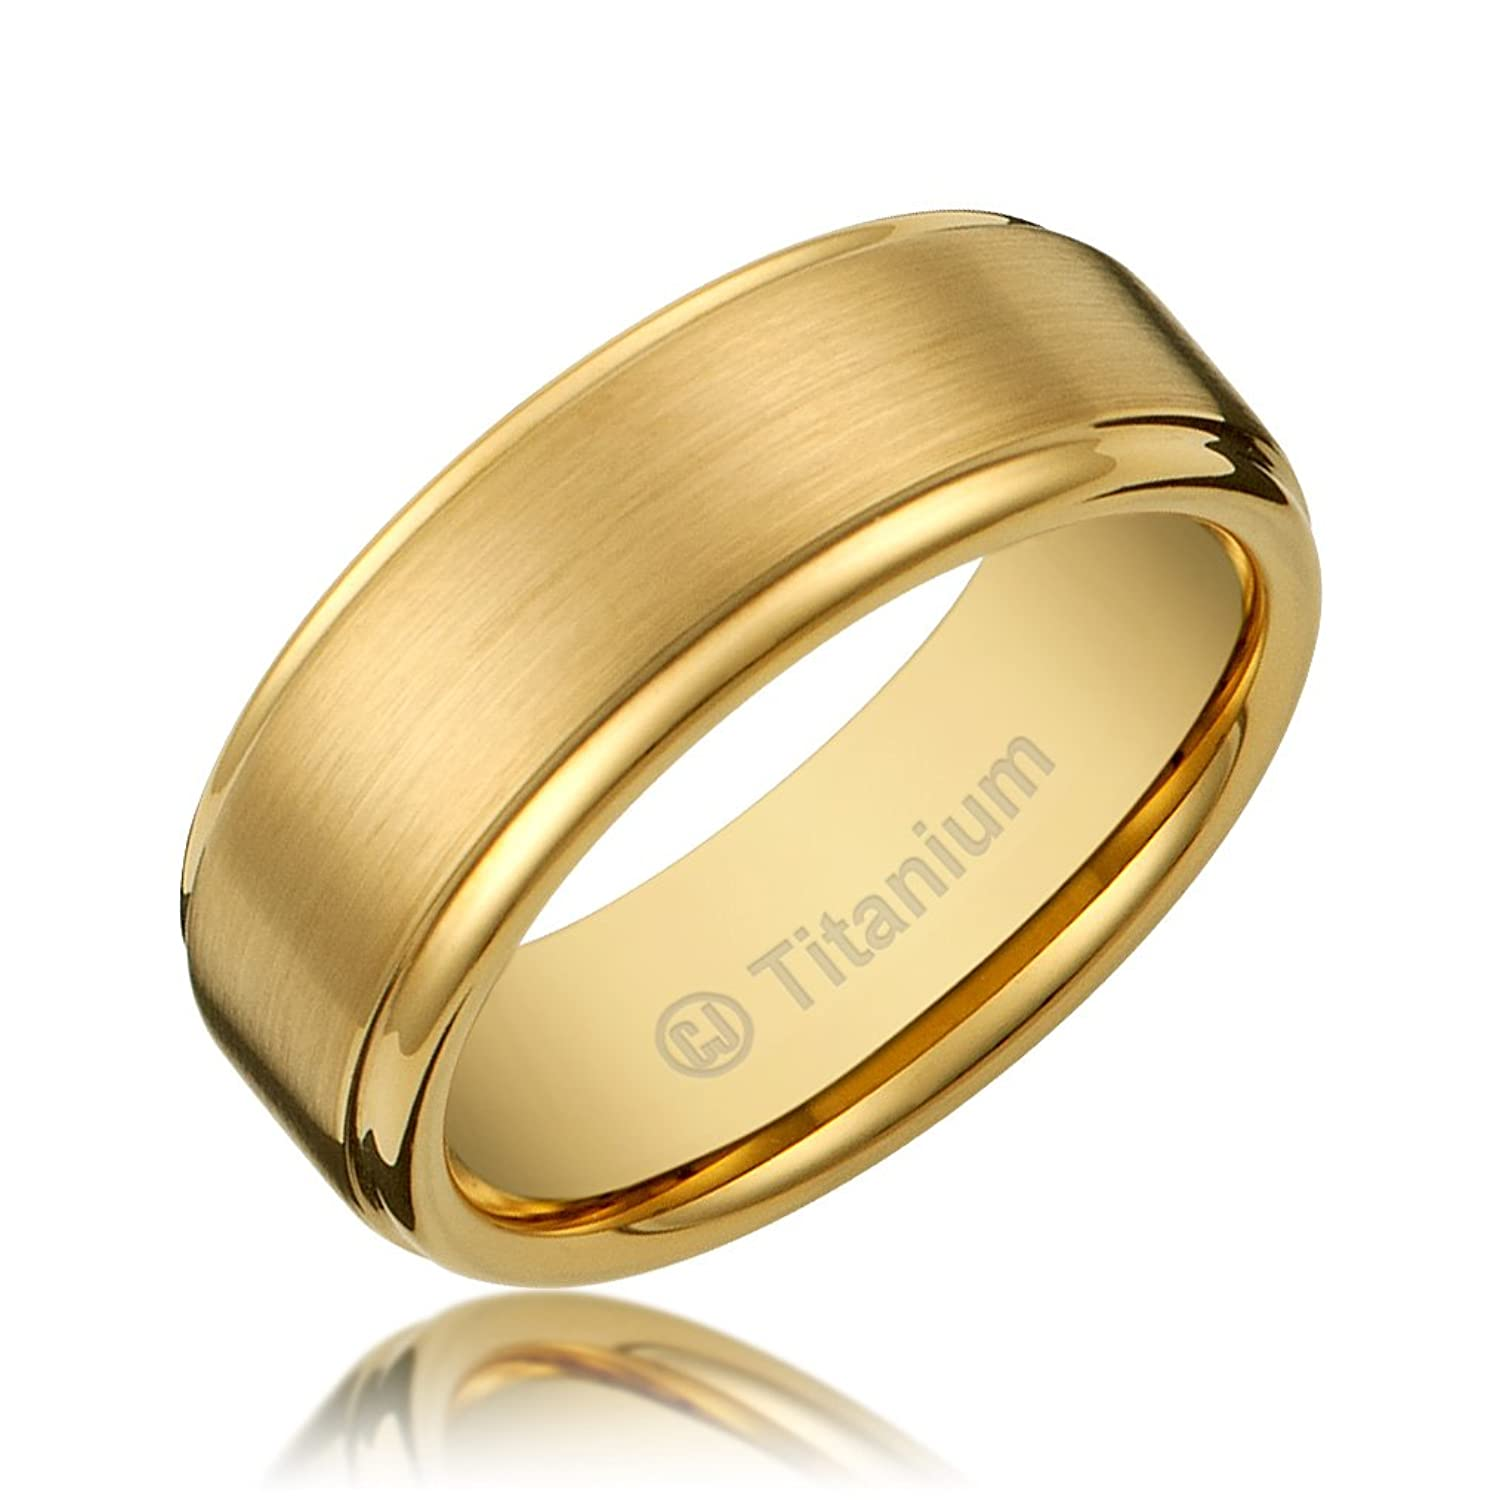 Cavalier Jewelers 8MM Mens Titanium GoldPlated Ring Wedding Band